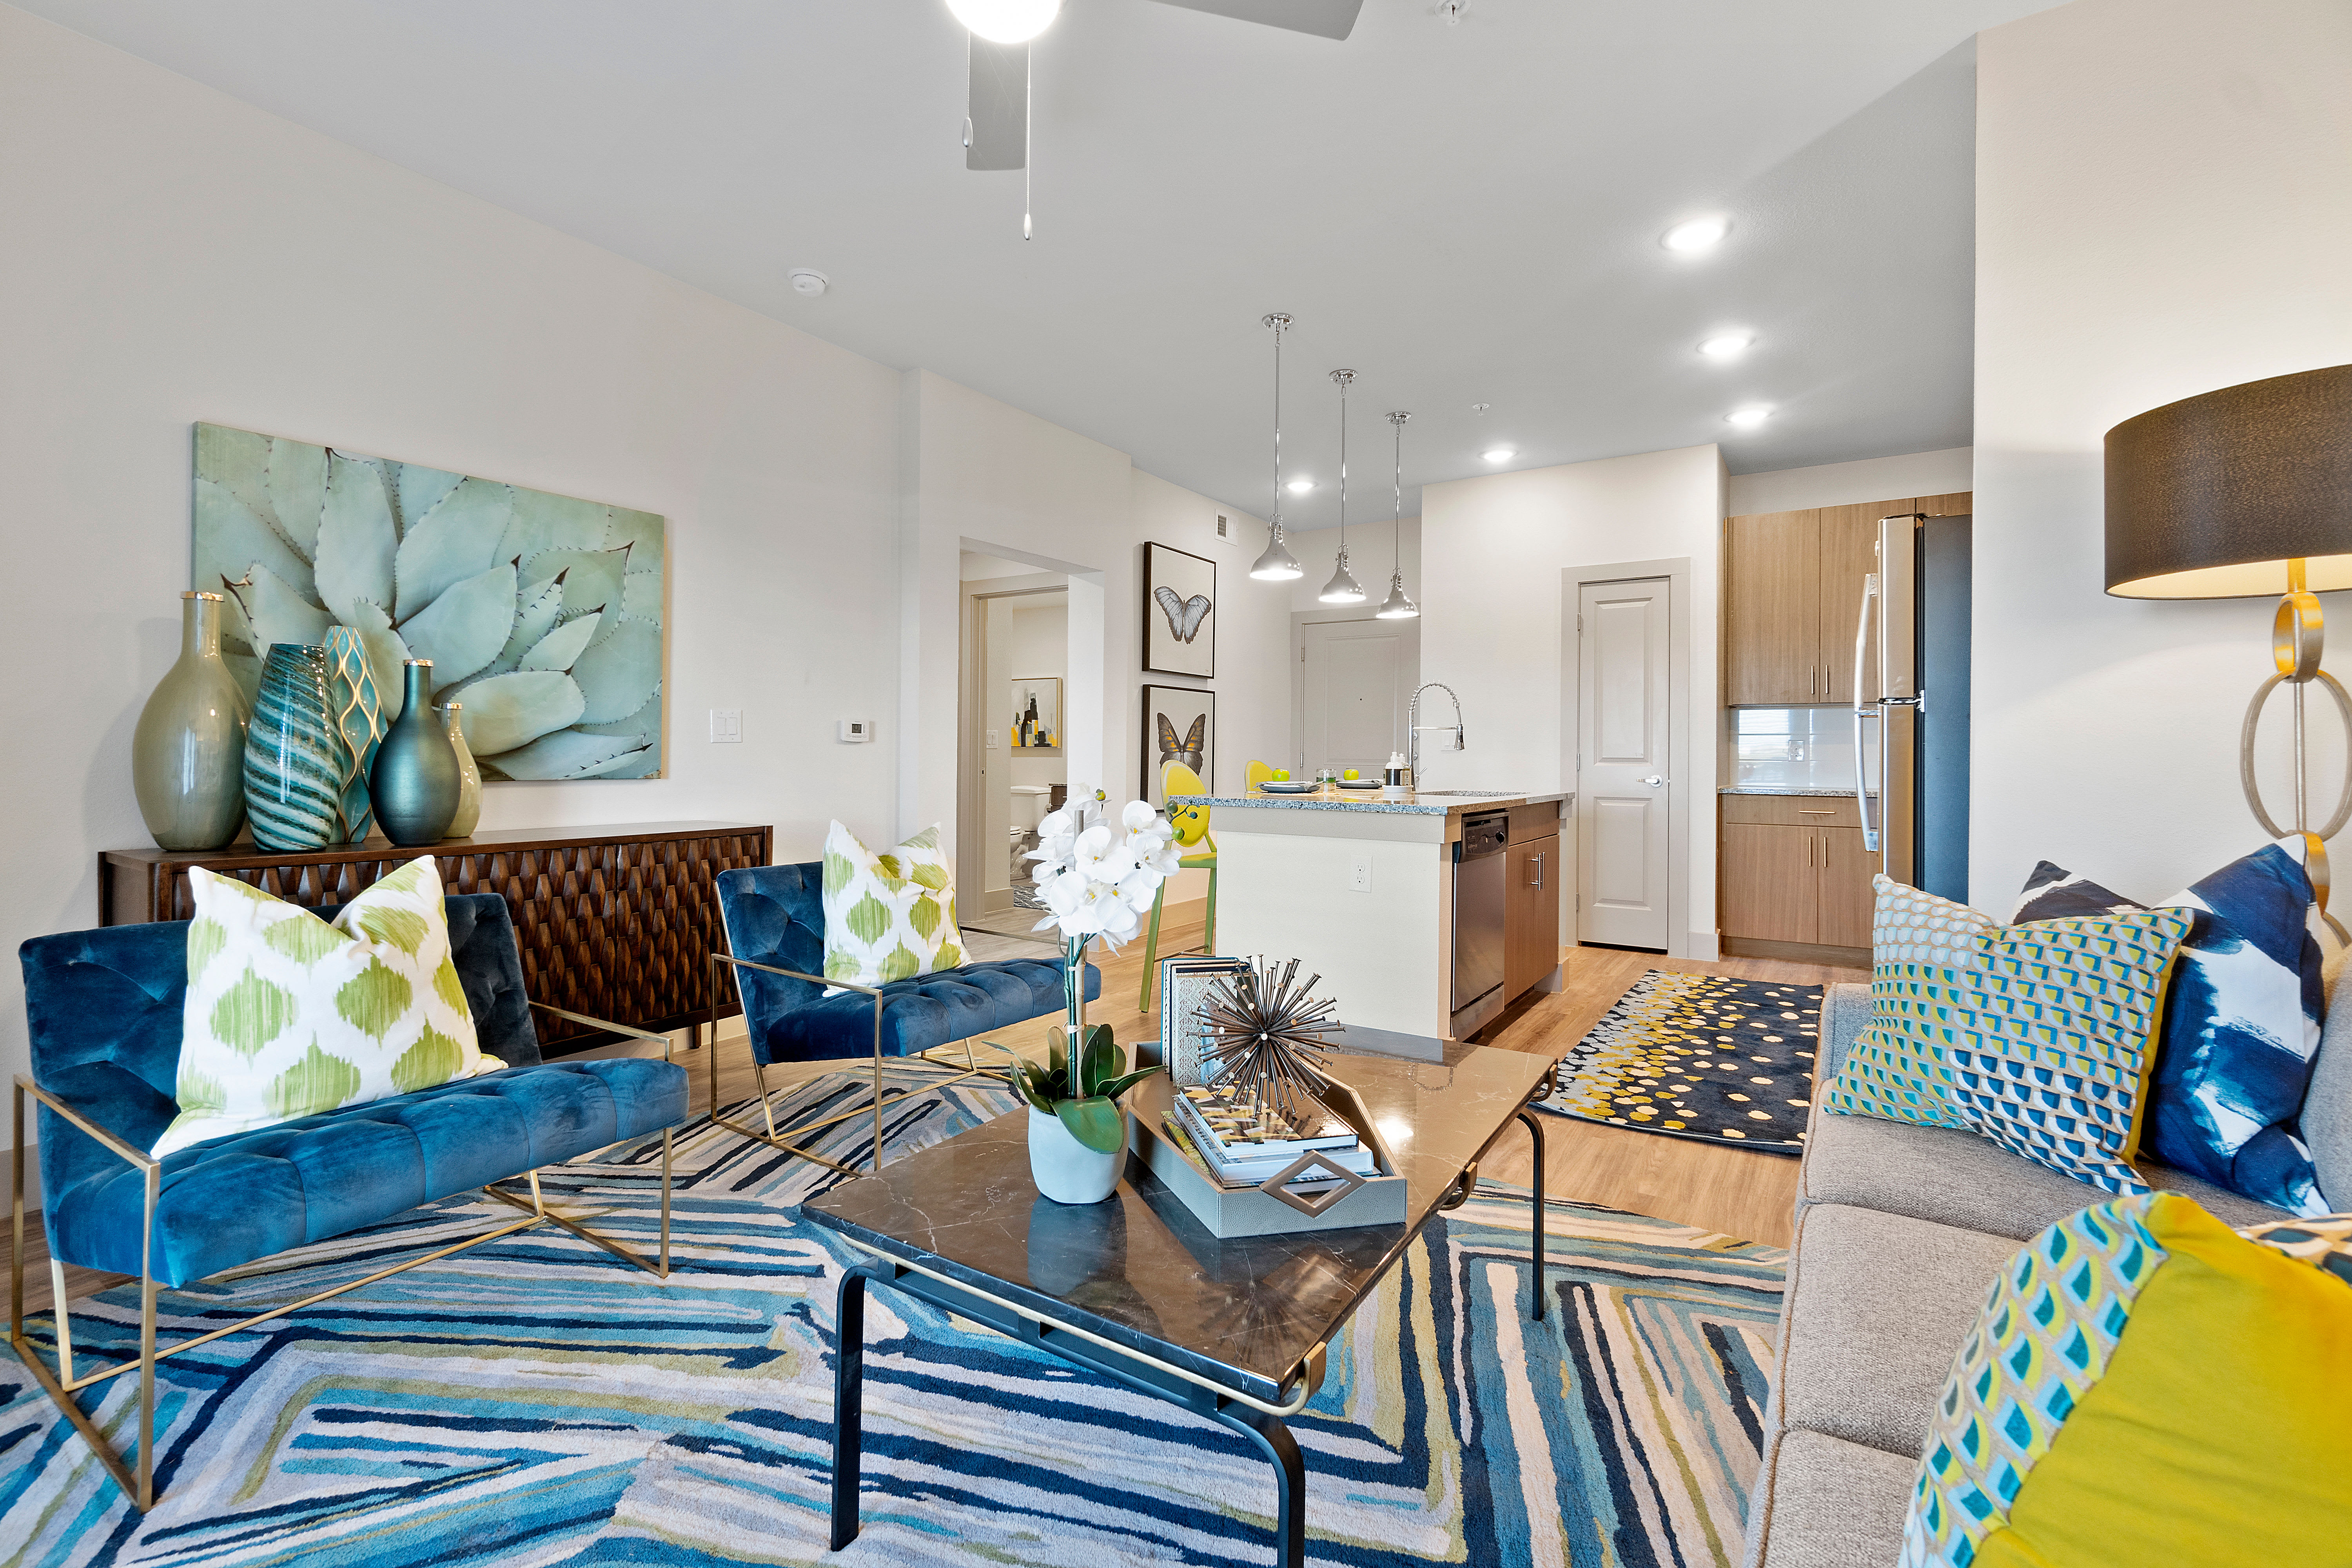 Living room with wood-style flooring at McCarty Commons in San Marcos, Texas